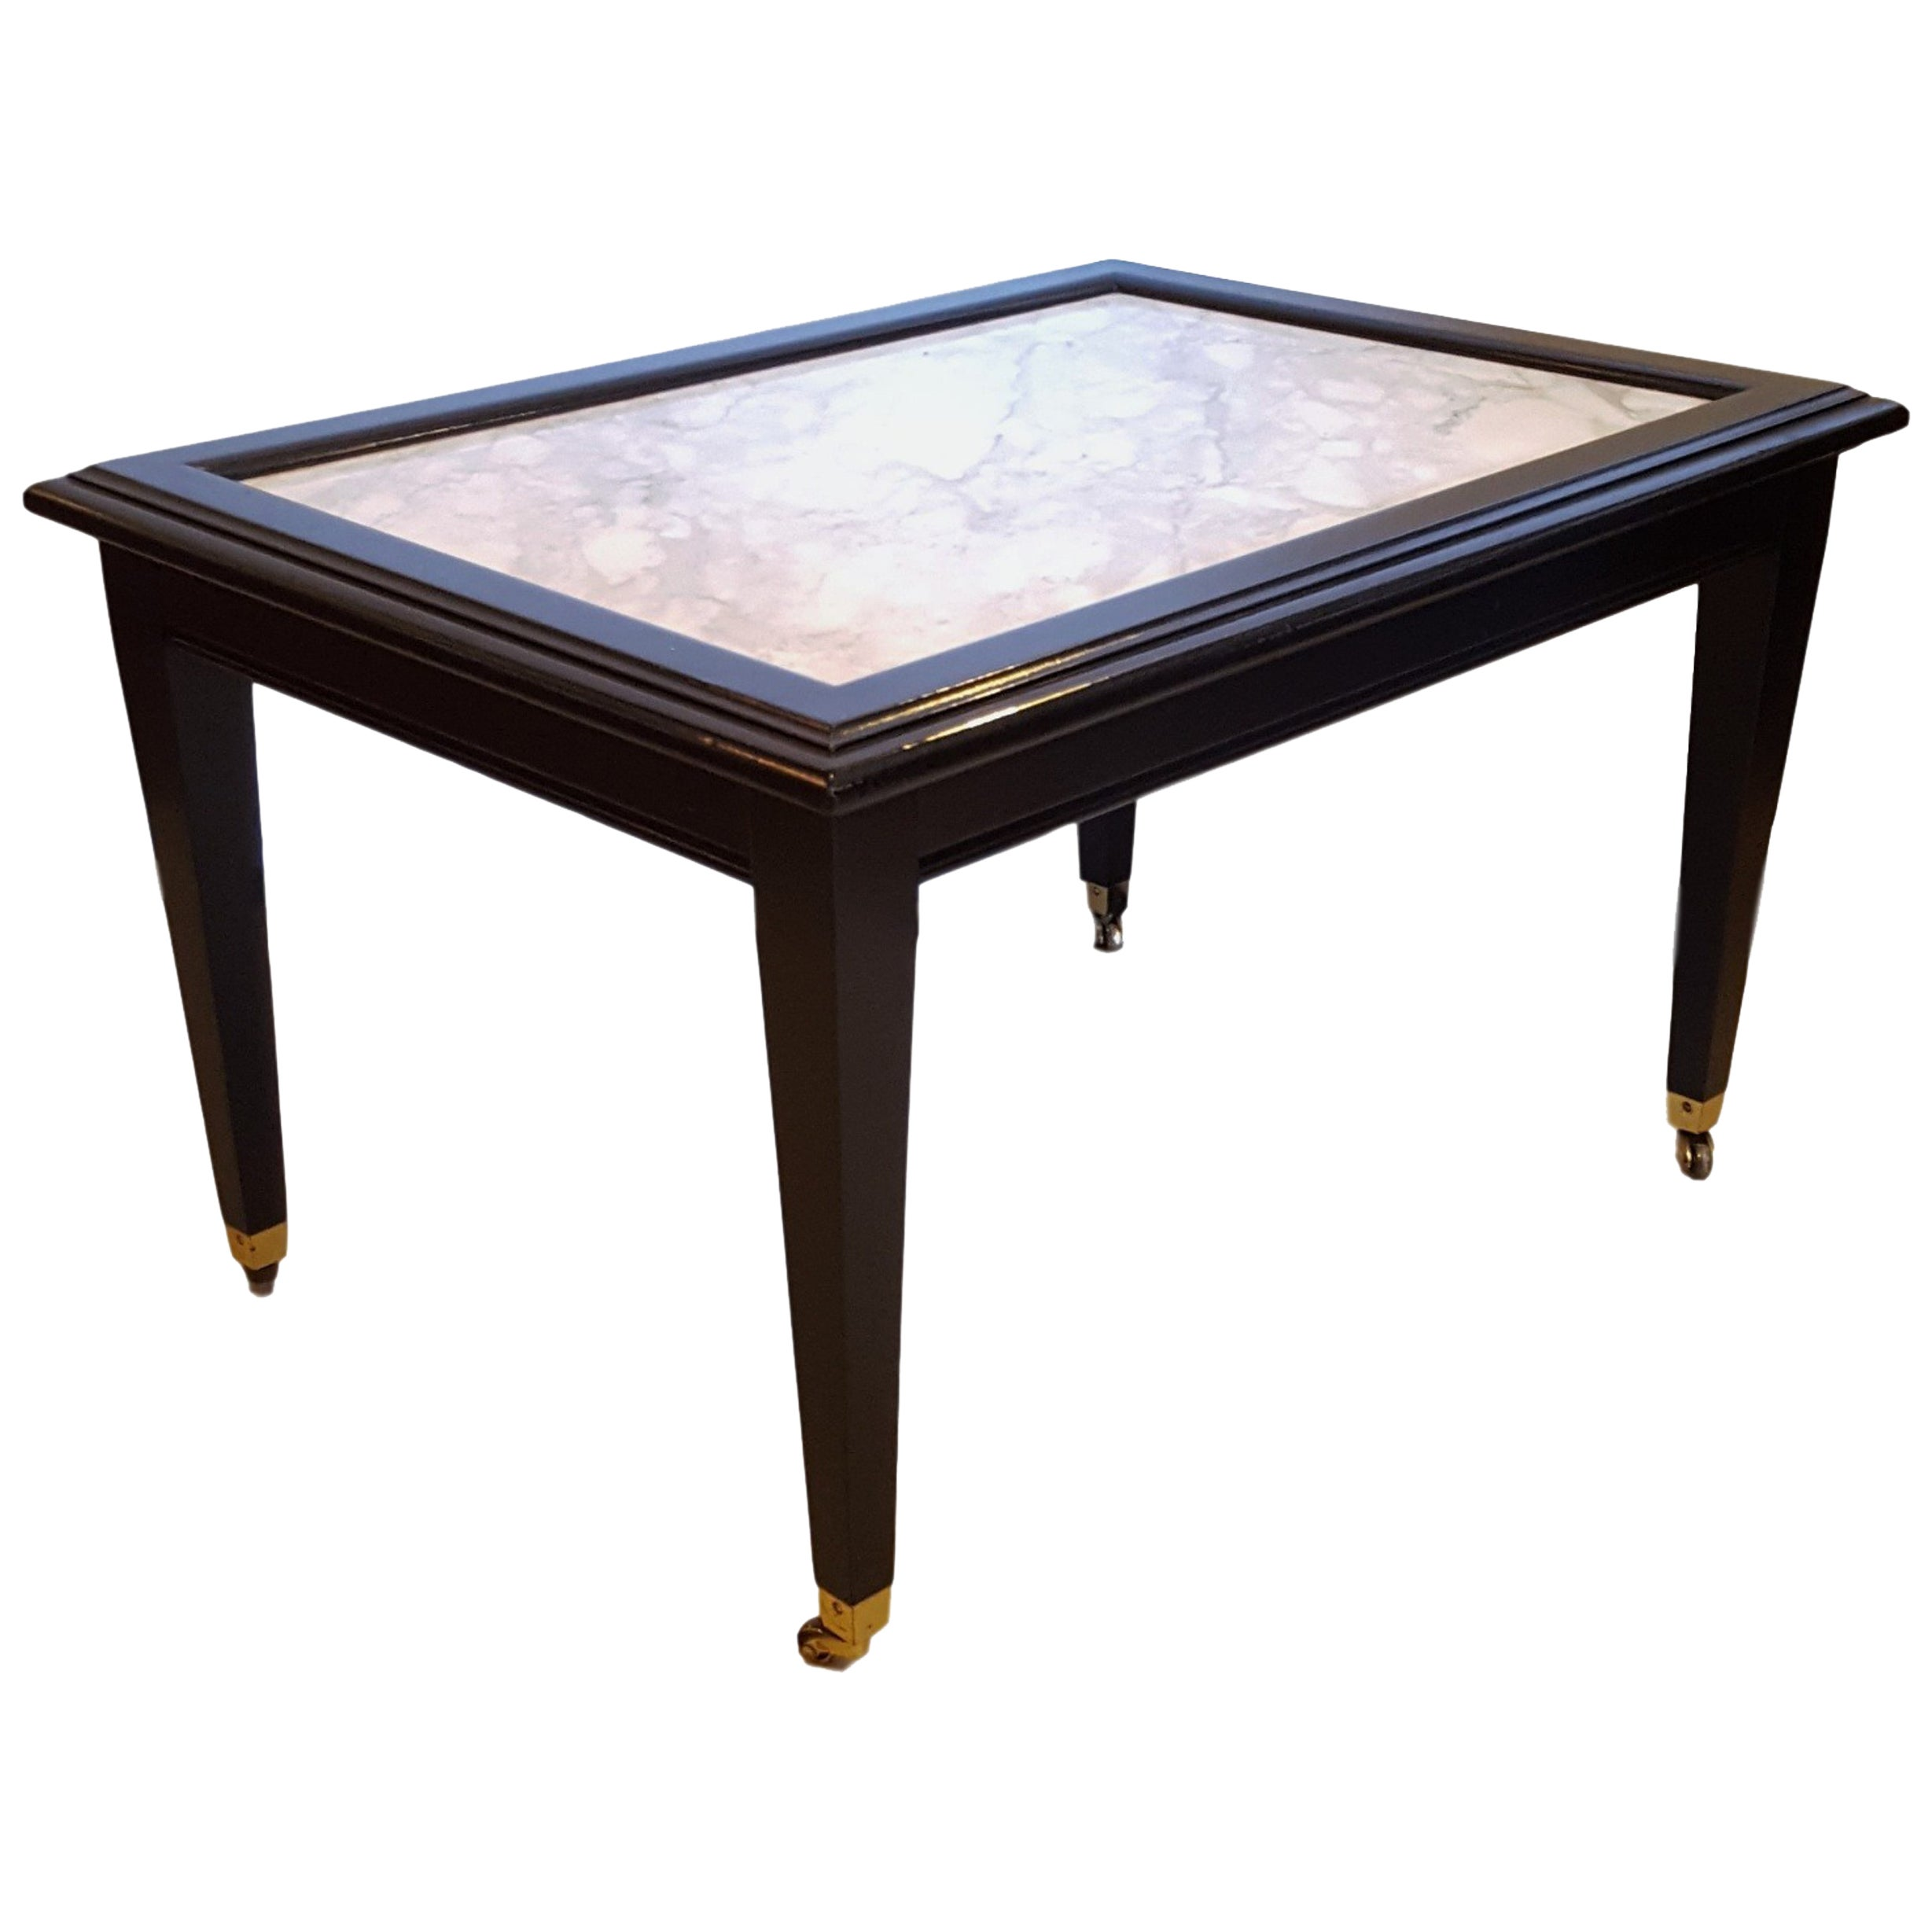 Ebonized Marble Top Coffee Table / Cocktail Table On Wheels manner of Jansen